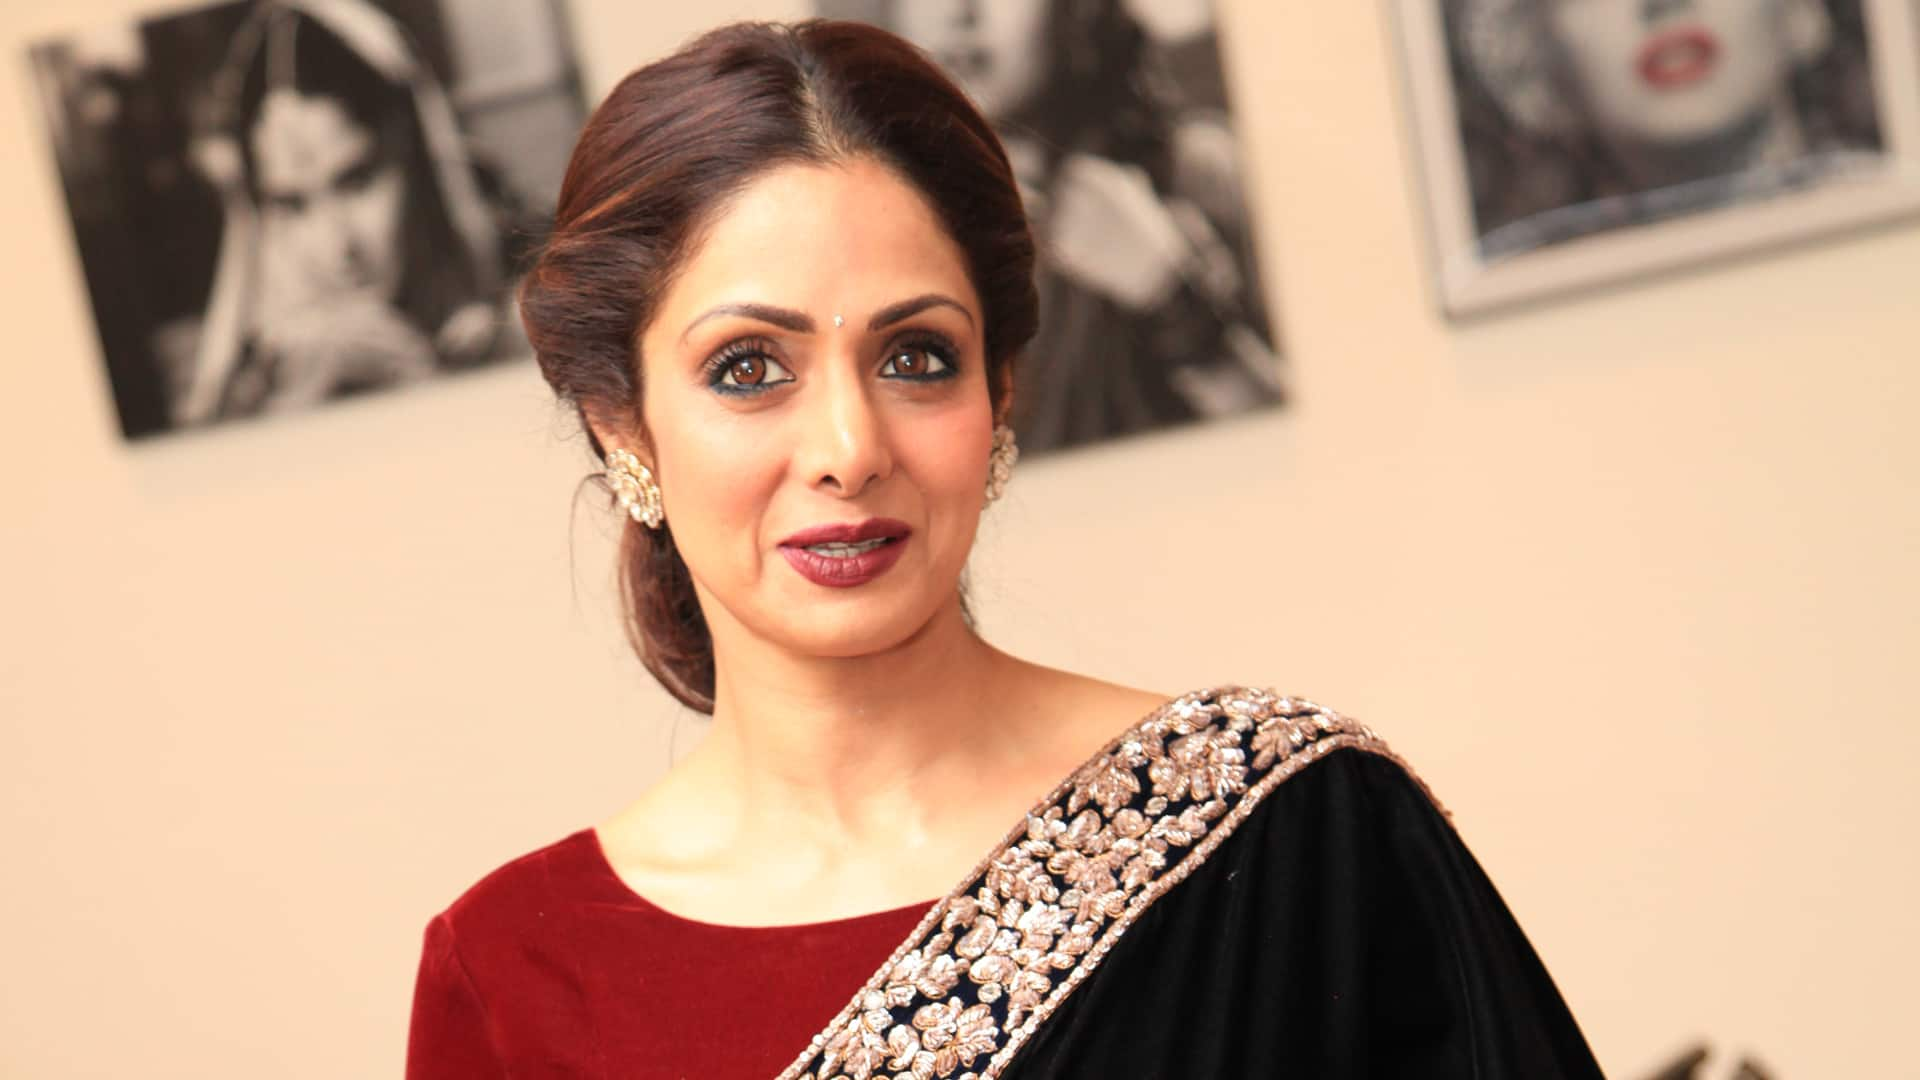 Sridevi's Death: More Delay Likely in Arrival of Actor's Mortal Remains. Here Are The Reasons Why